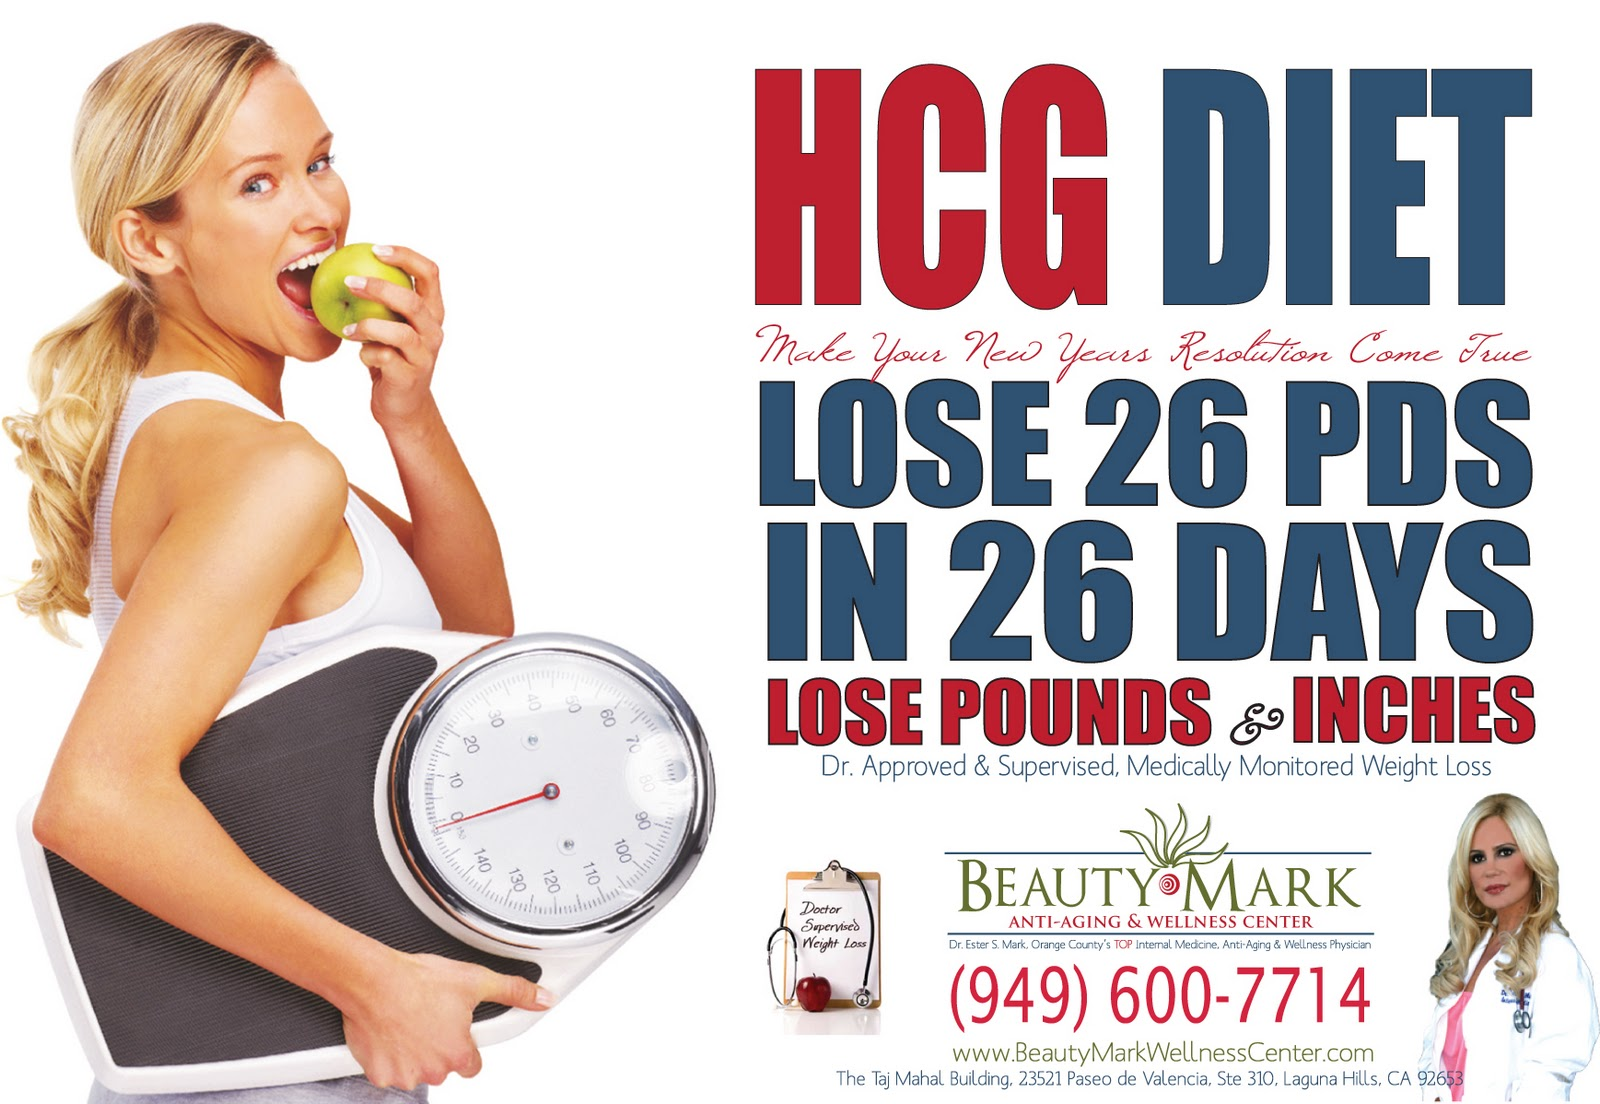 products to lose weight fast photo - 1